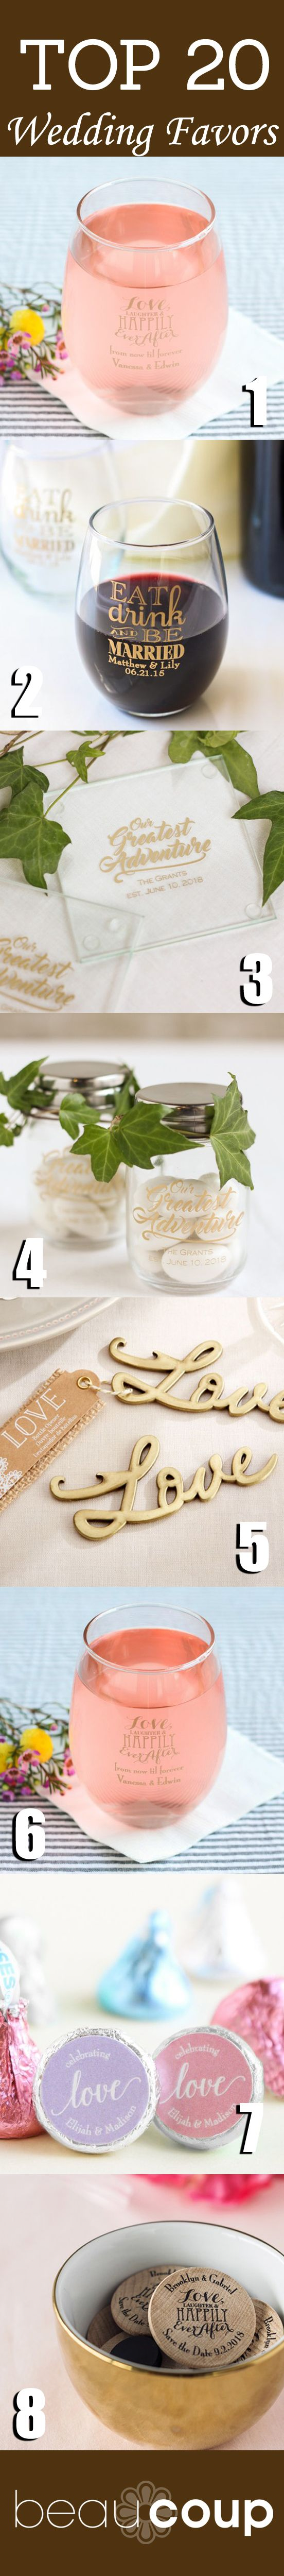 Honey Sayings for Wedding Favors | Giftwedding.co